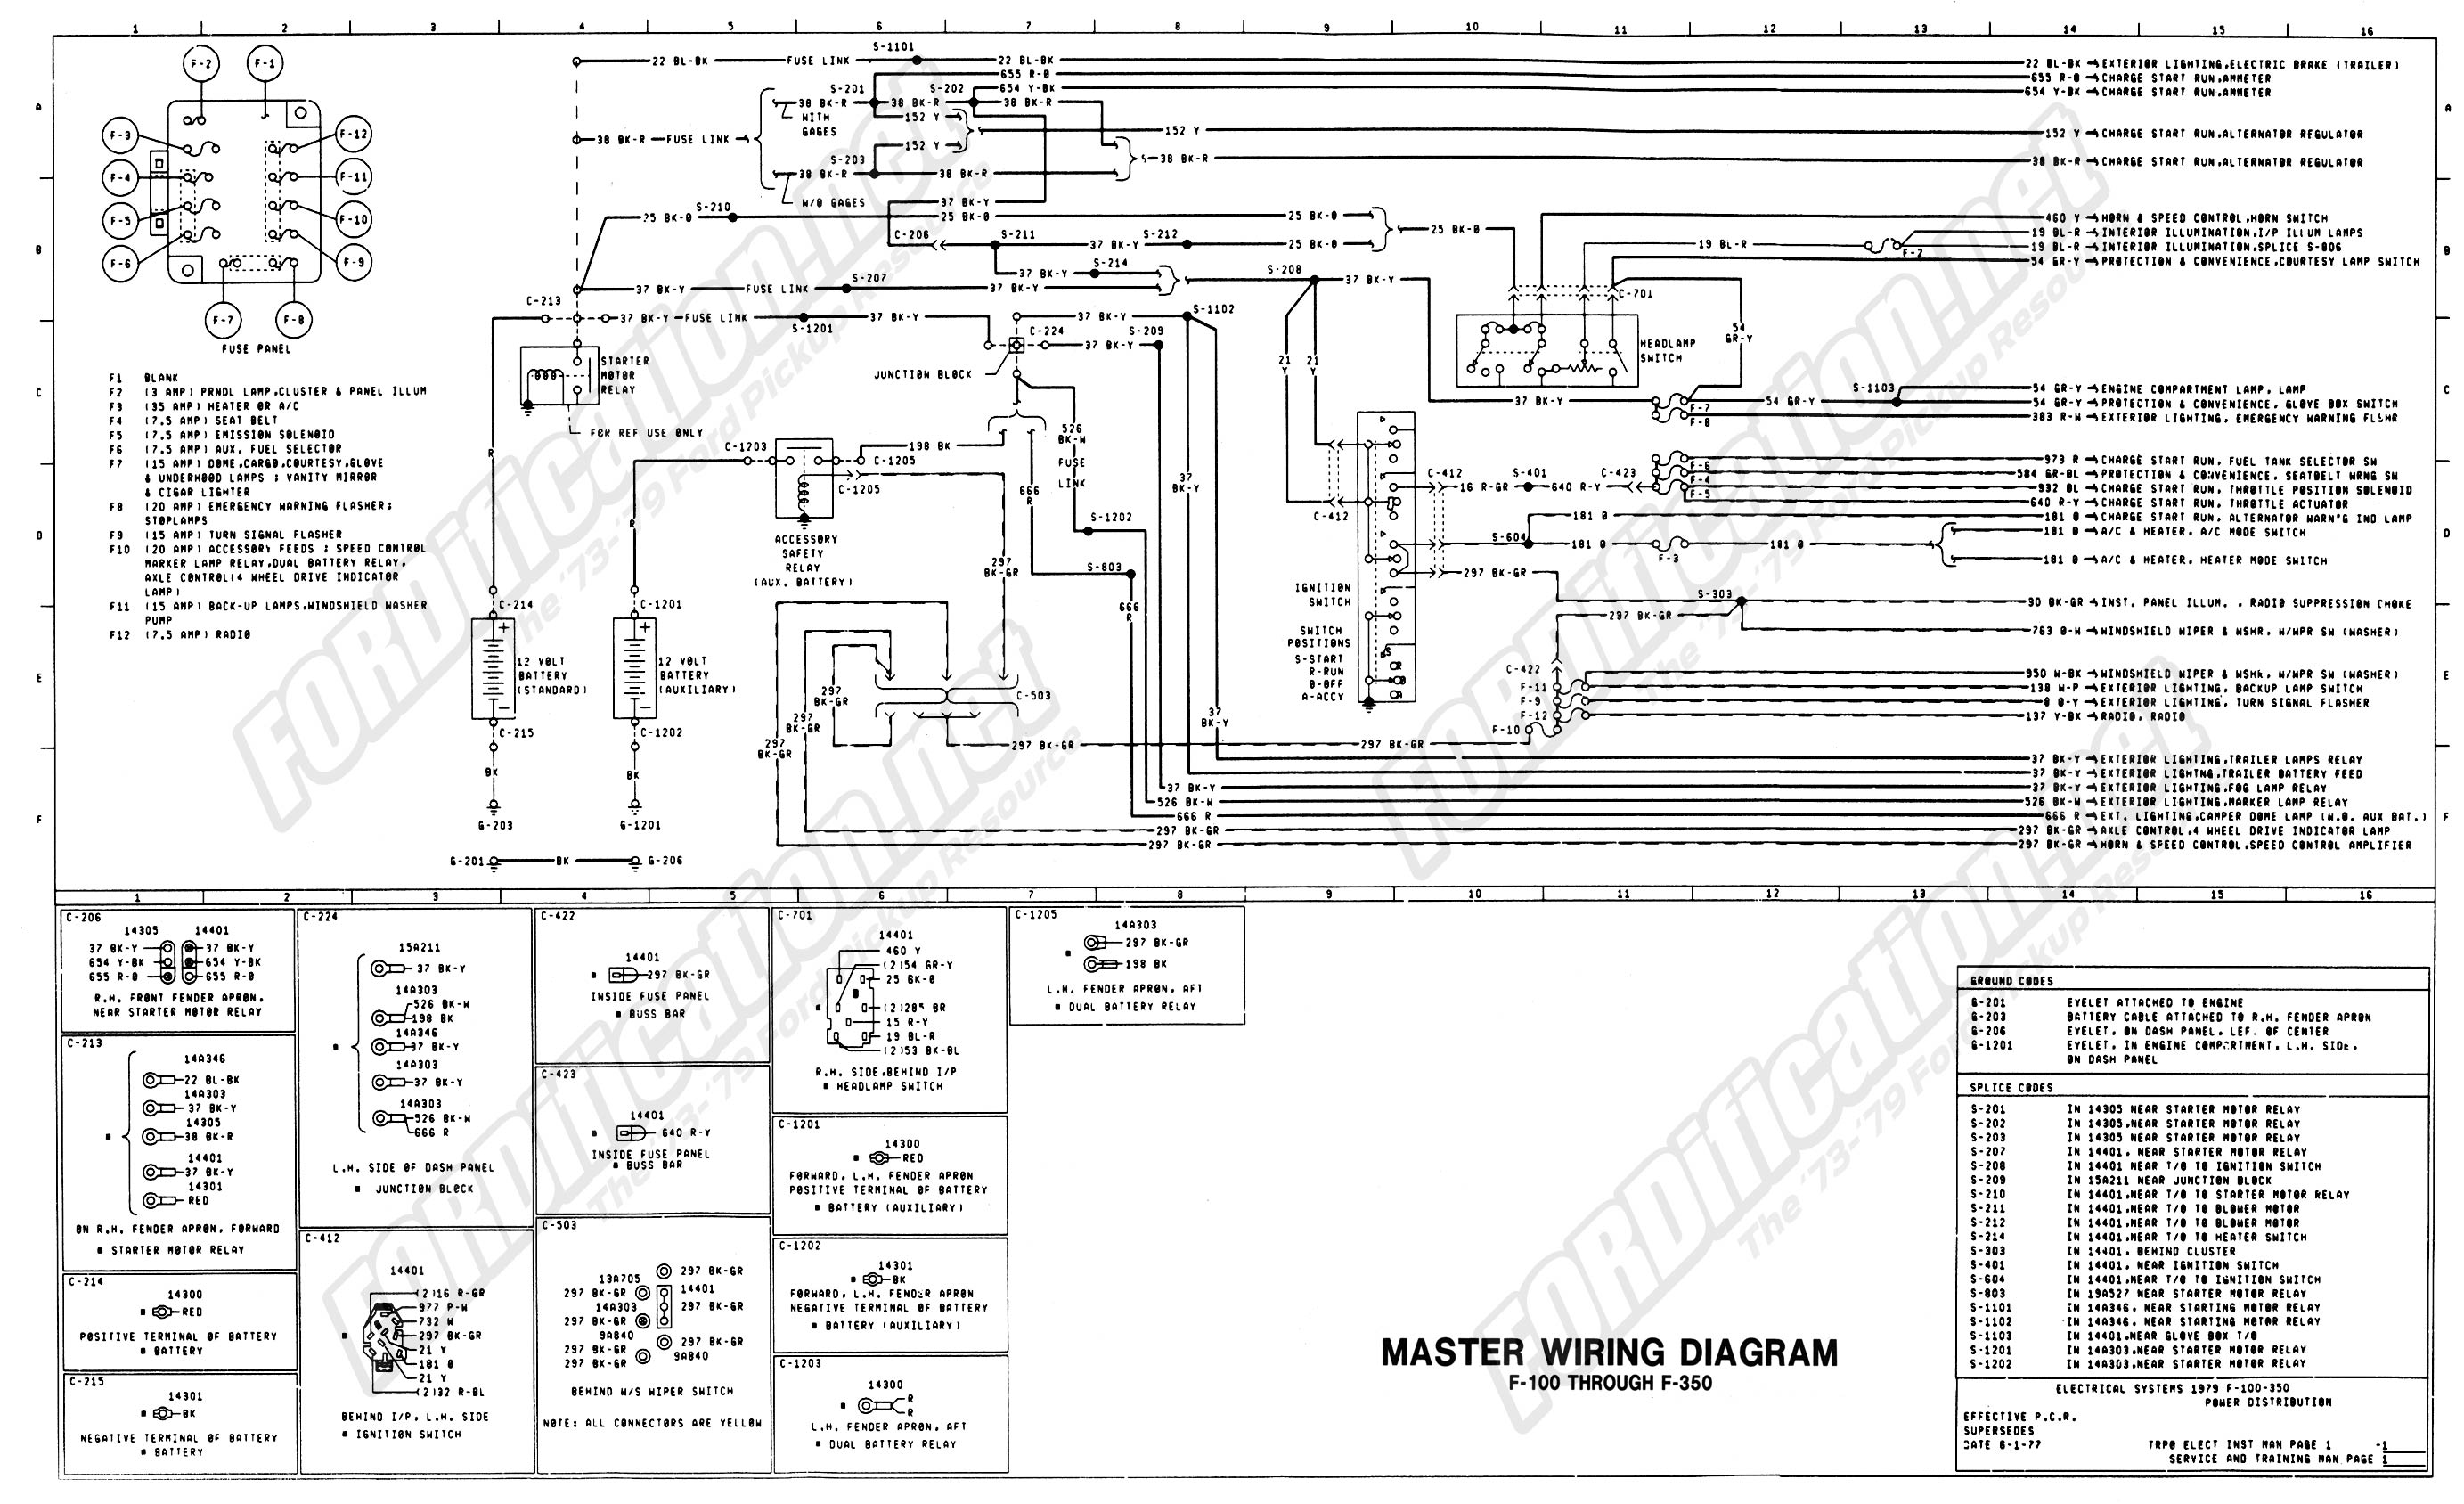 1059274 1979 F100 Ignition Switch Wiring Diagram Positions on 1999 ford econoline fuse box diagram